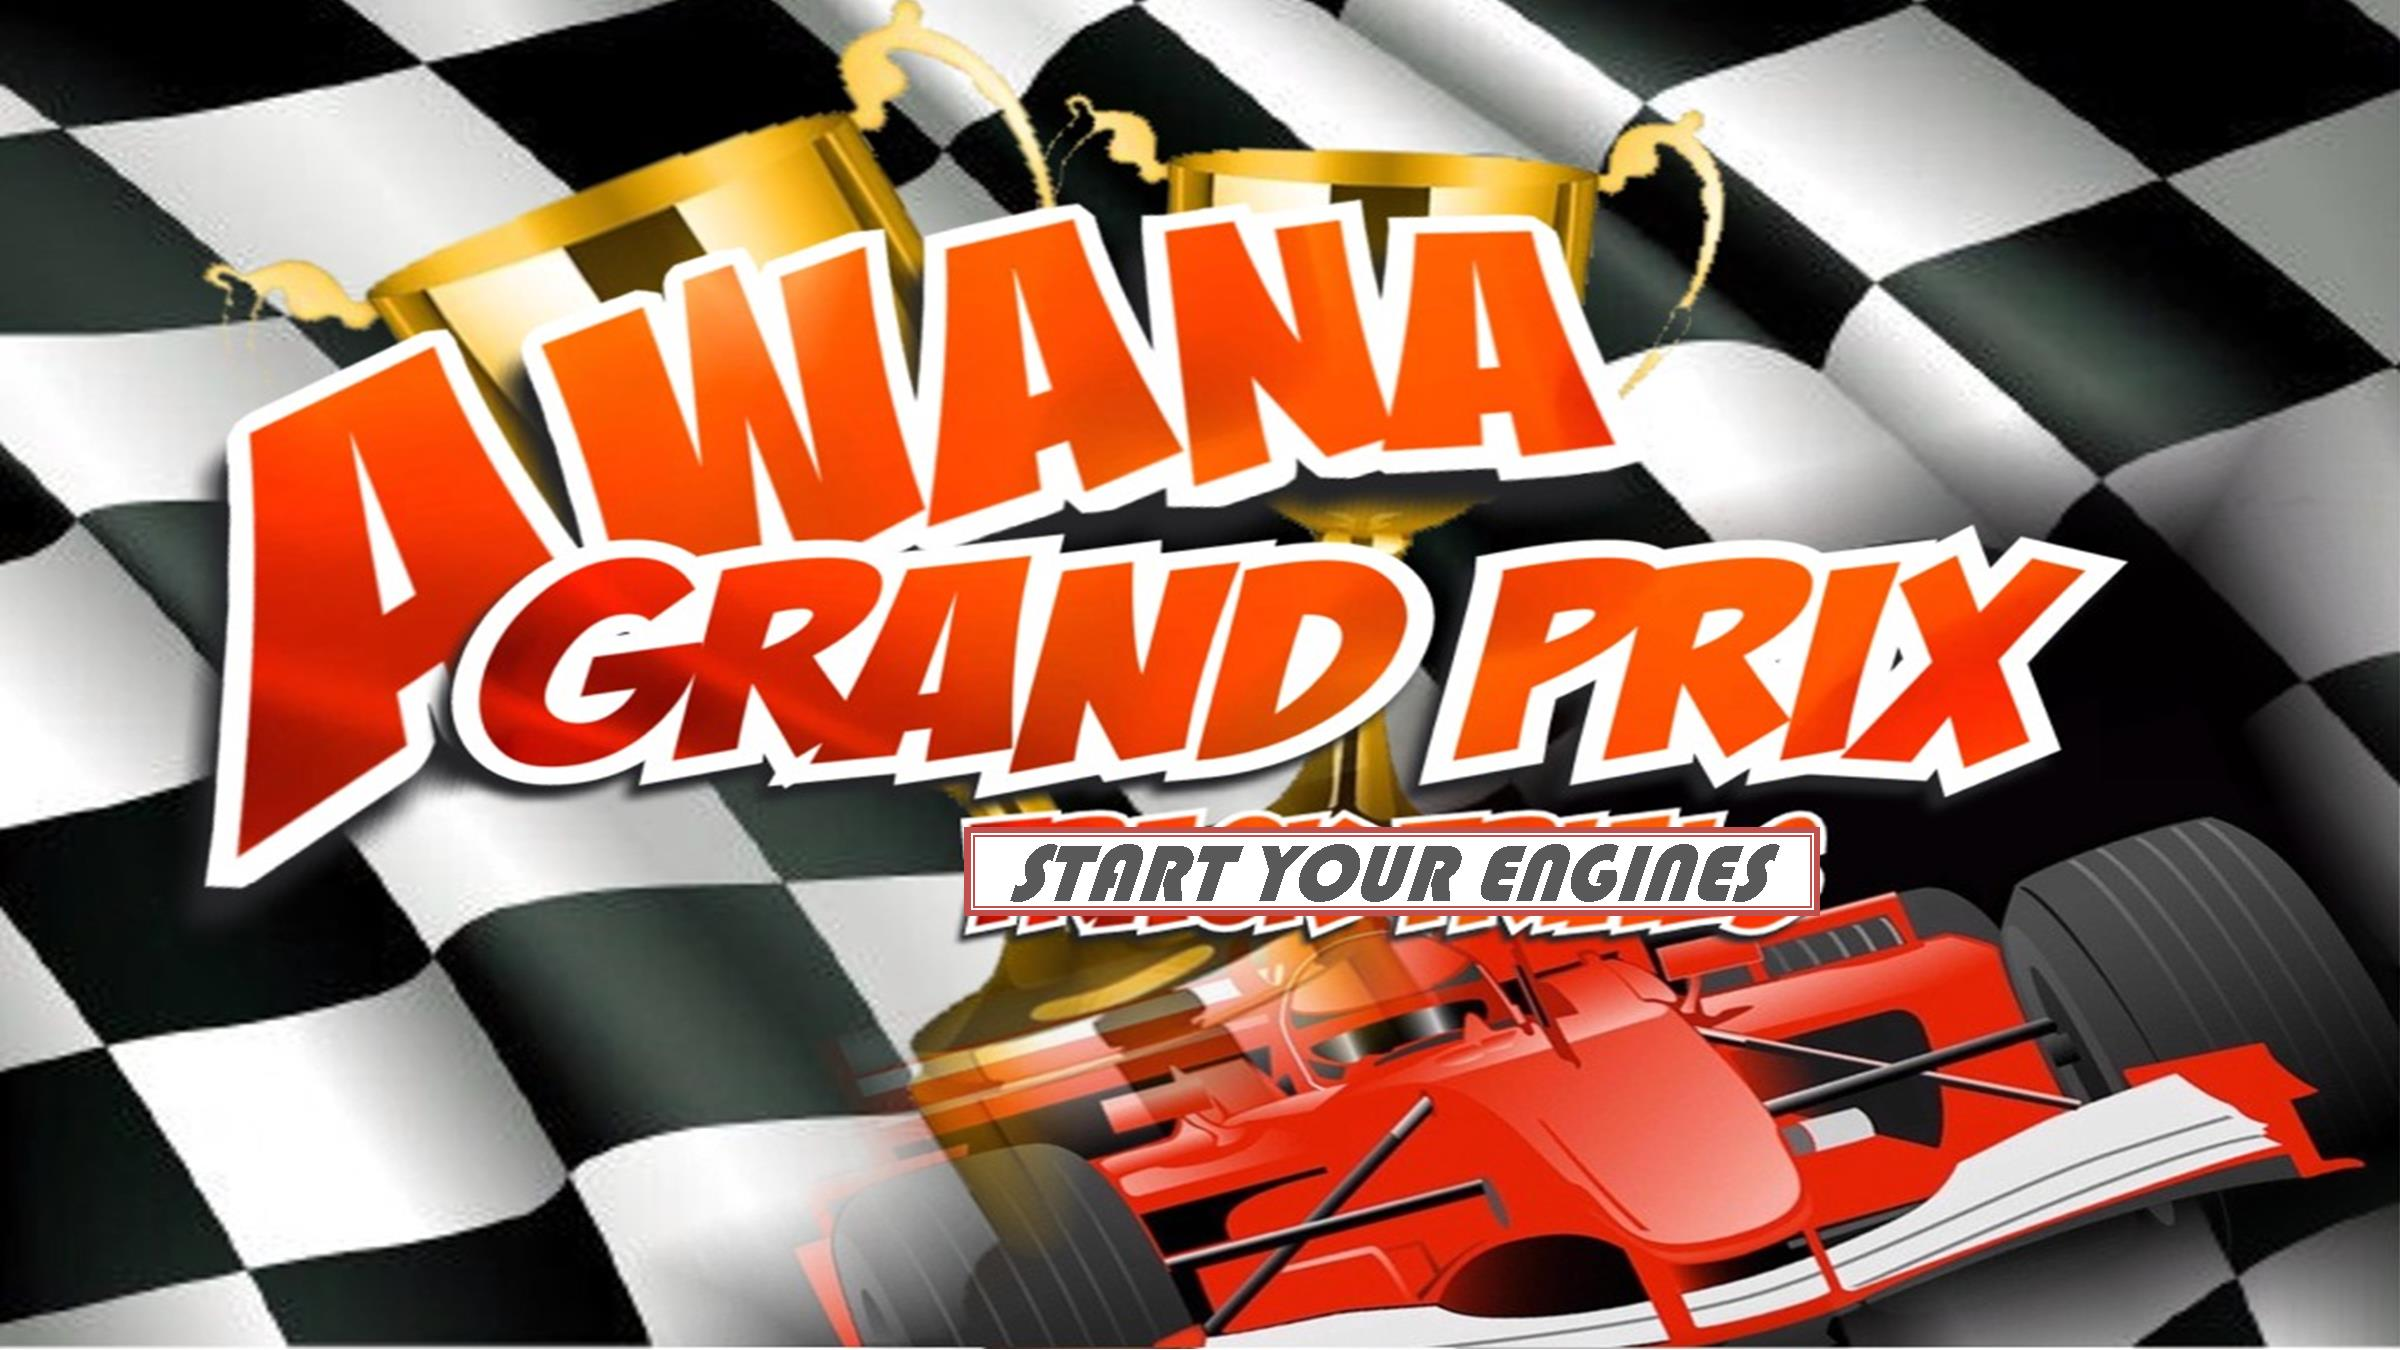 Awana Grand Prix is Saturday, March 22!